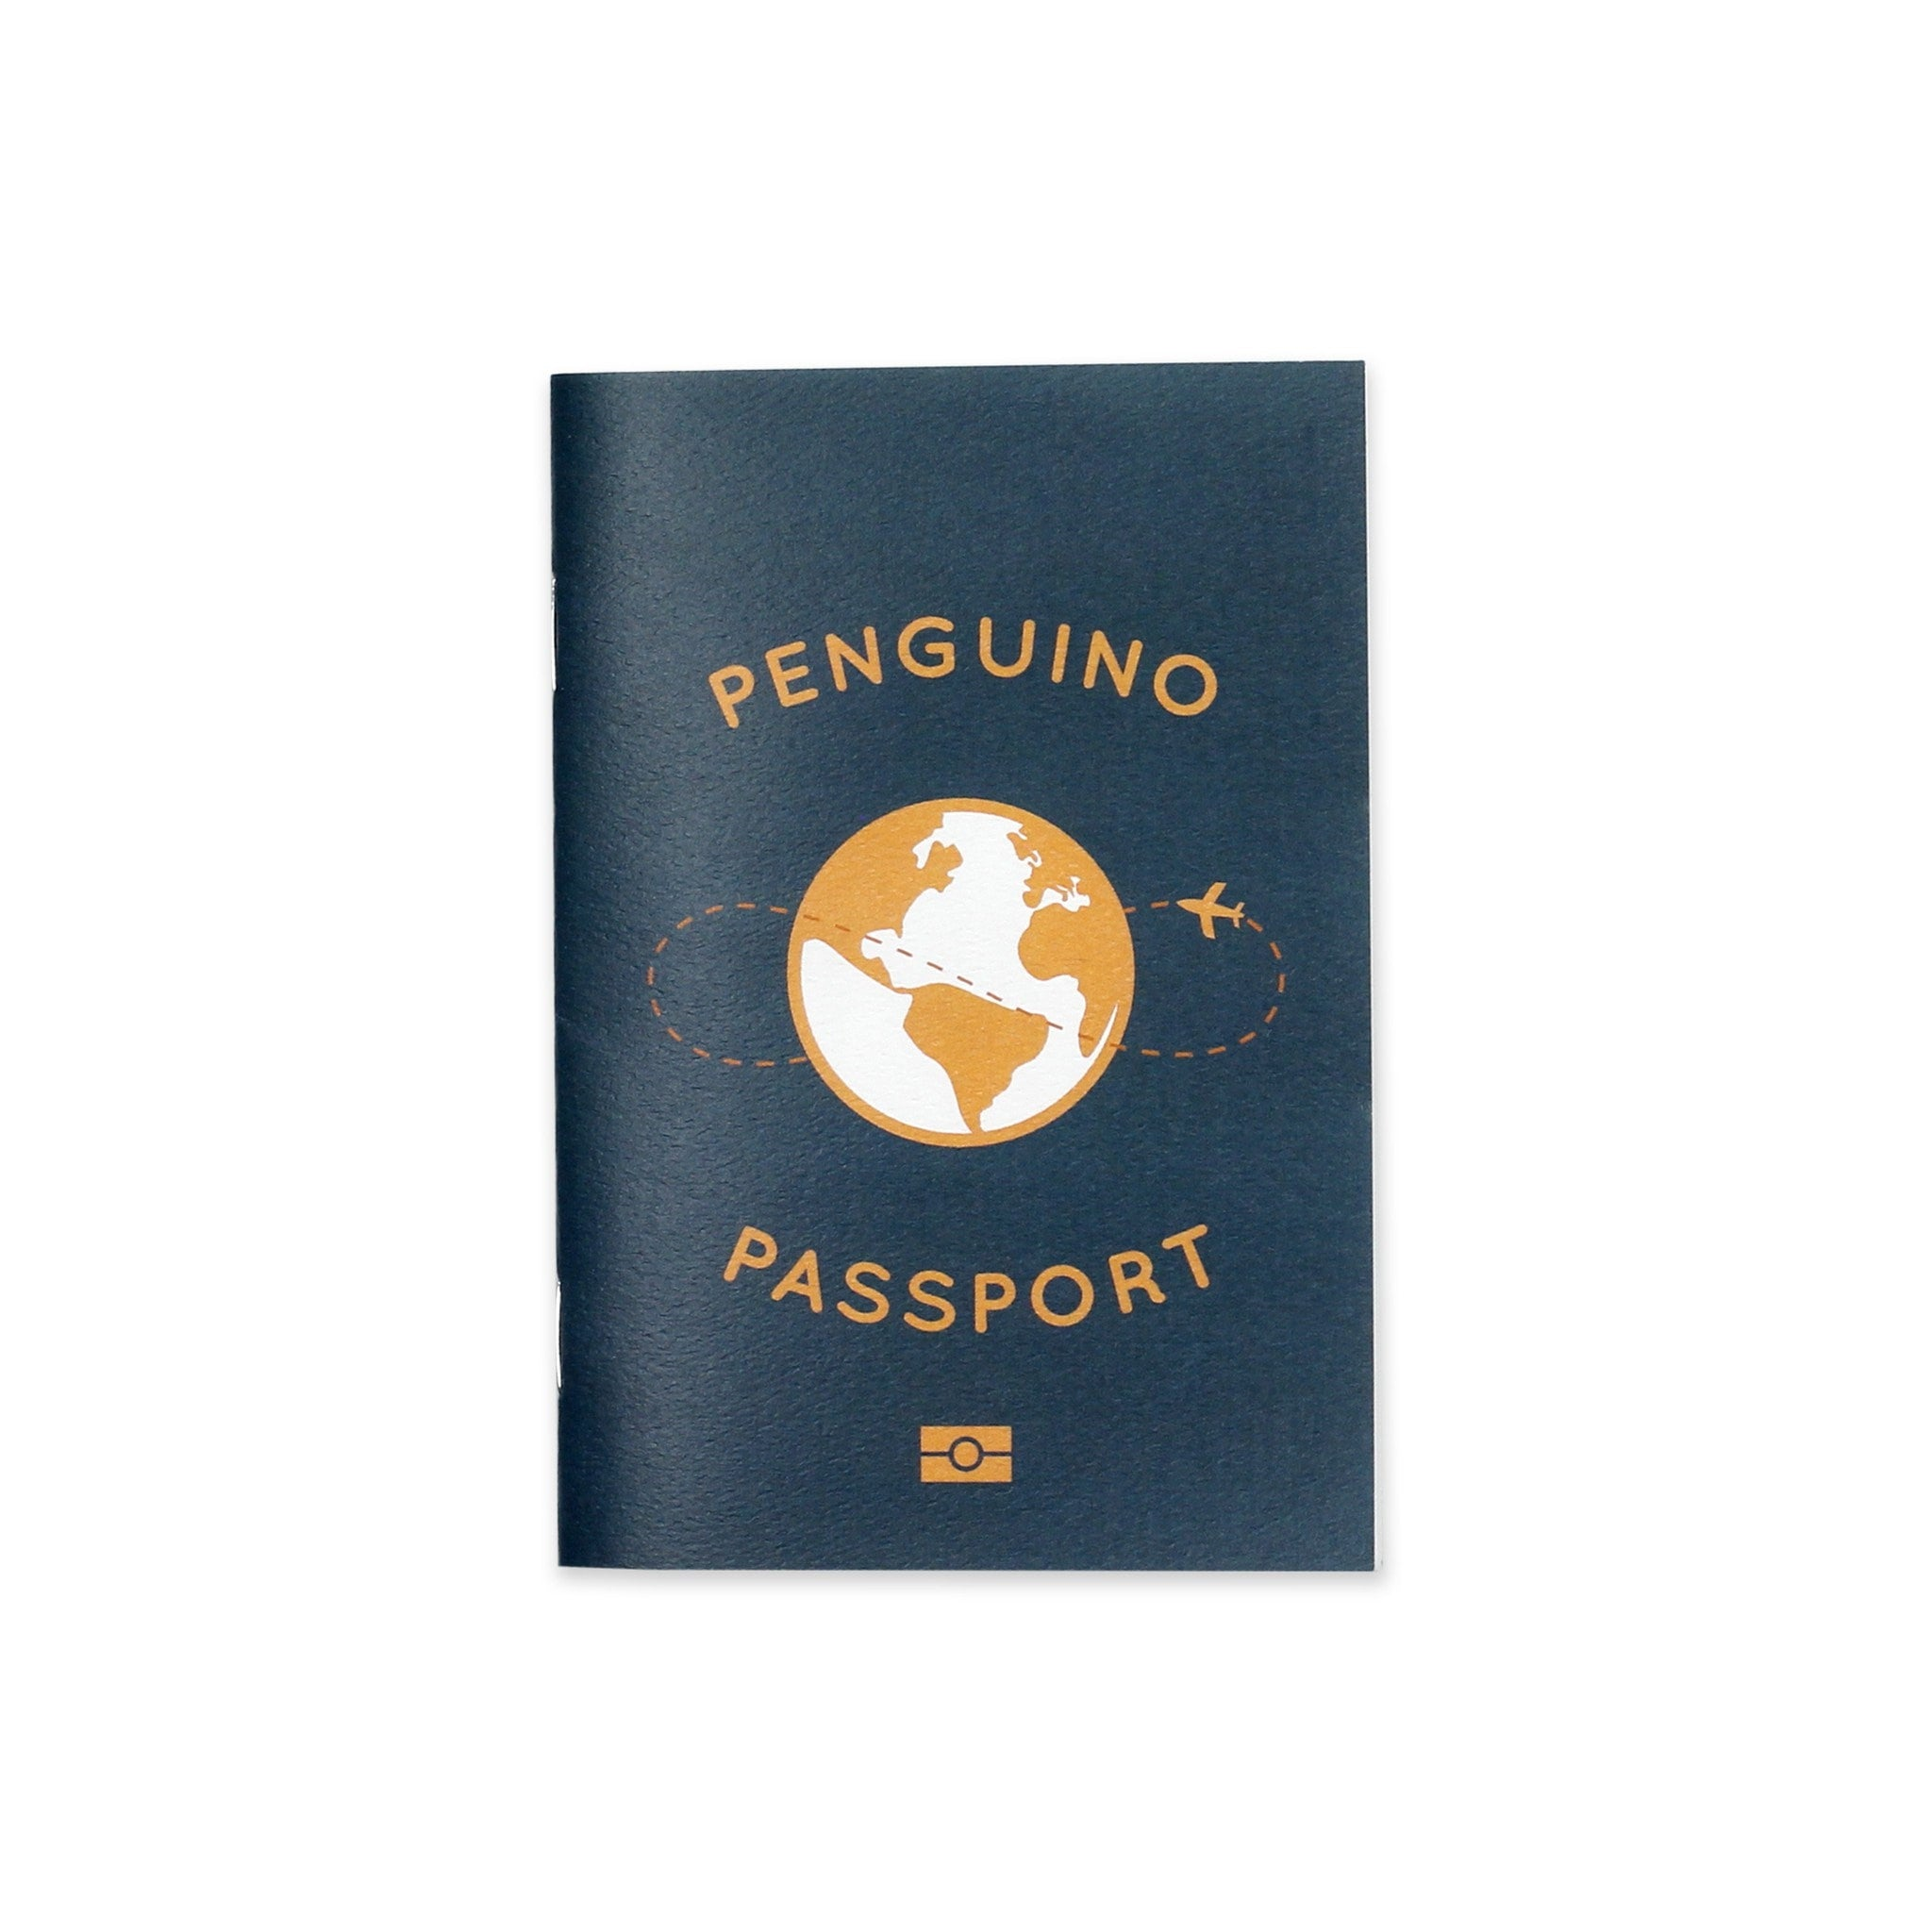 Penguino Passport